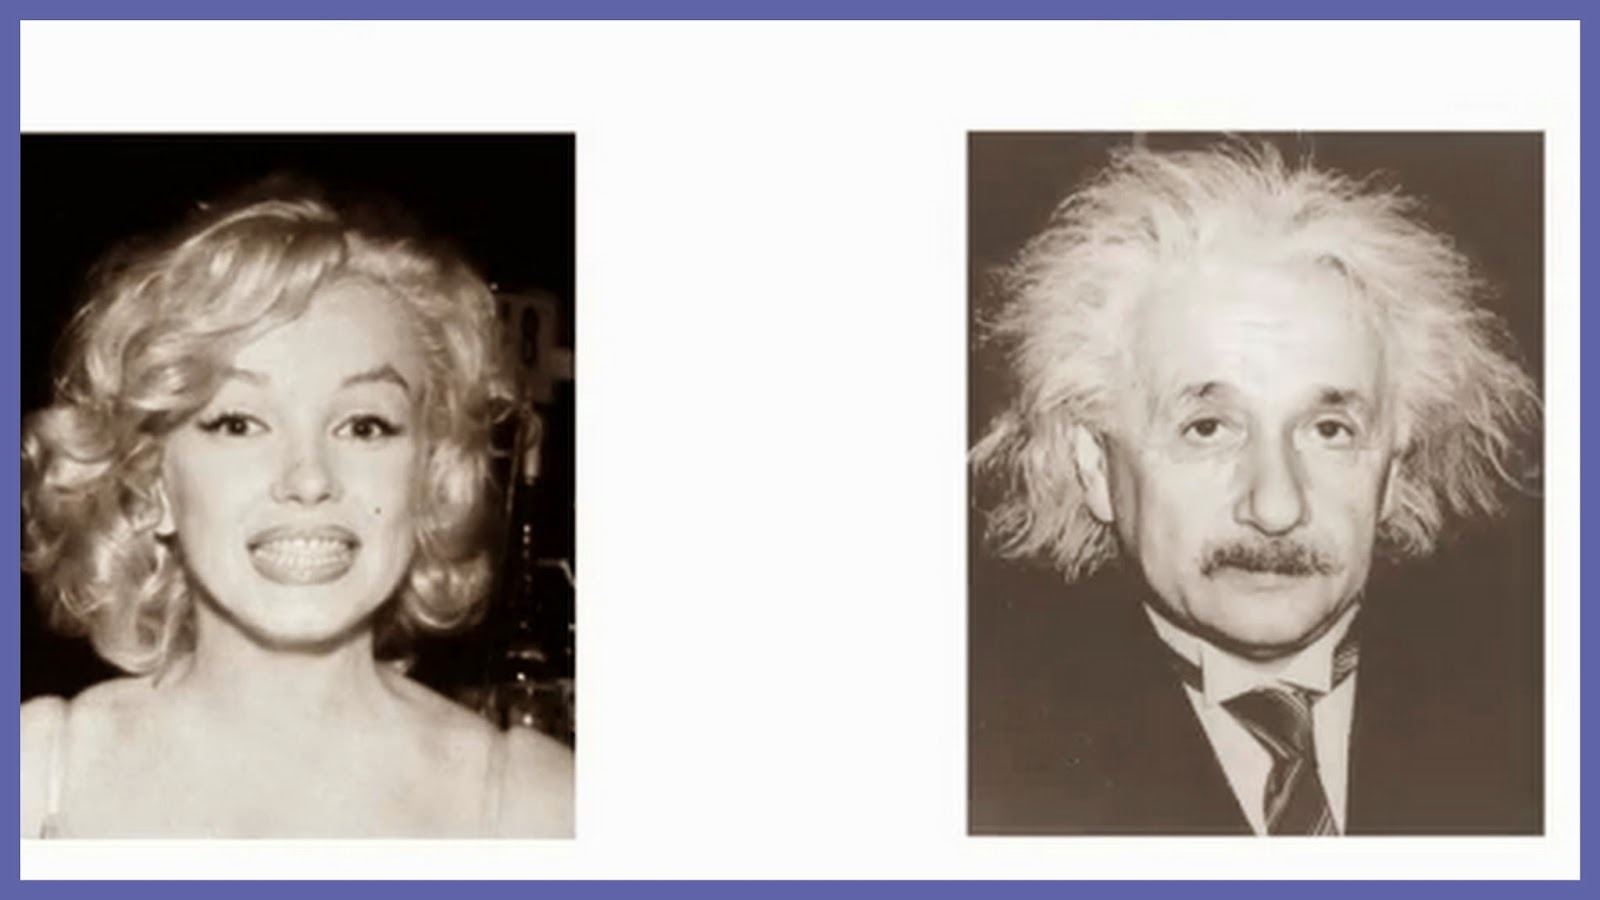 Do you see marilyn monroe or einstein